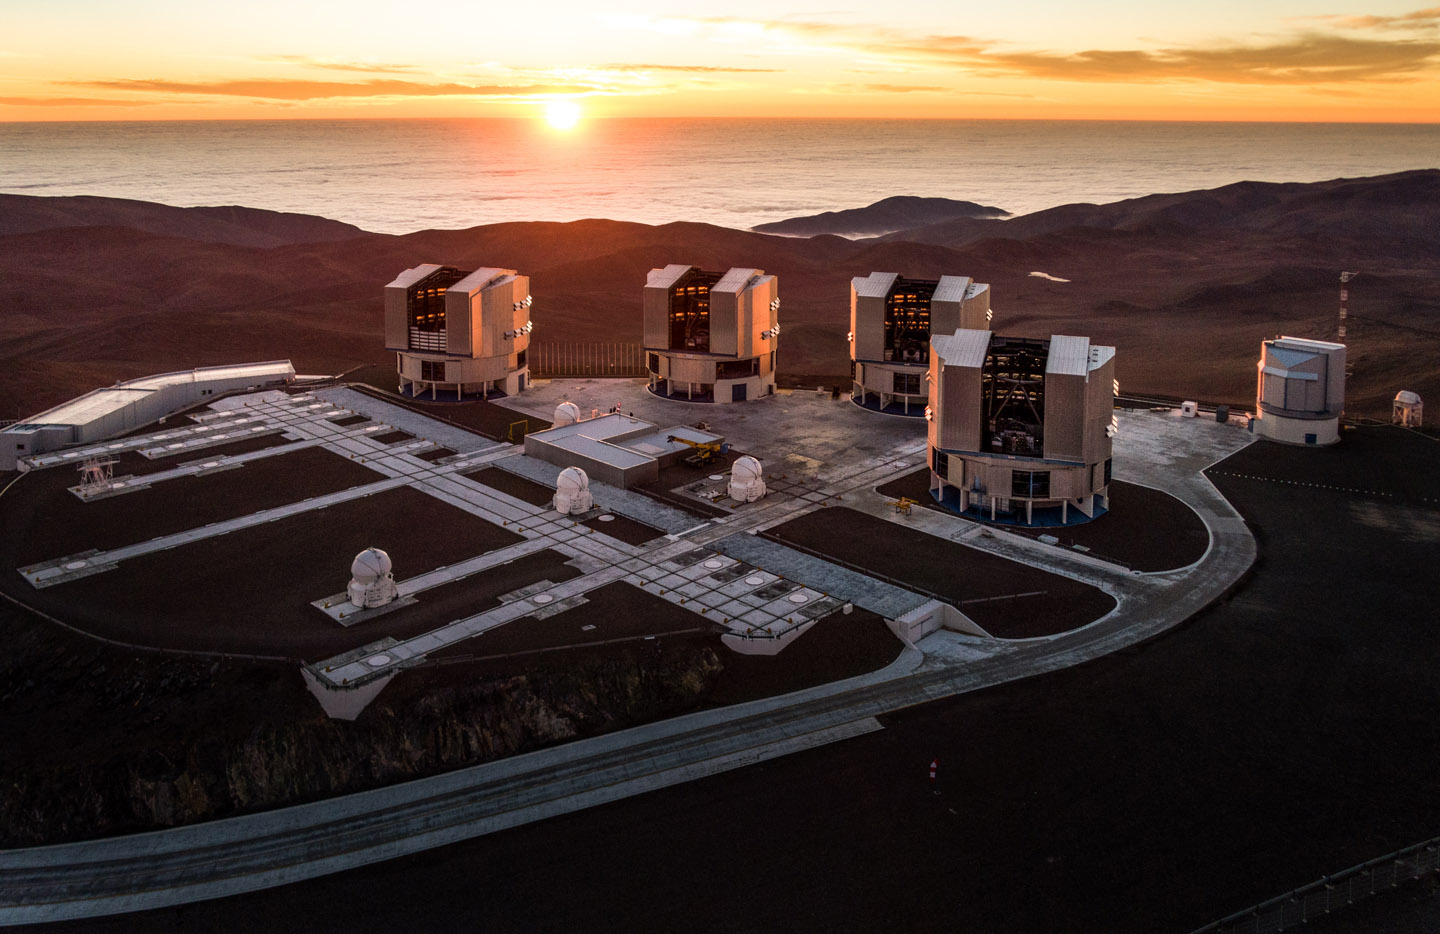 The VLT telescopes are ready for observation at sunset